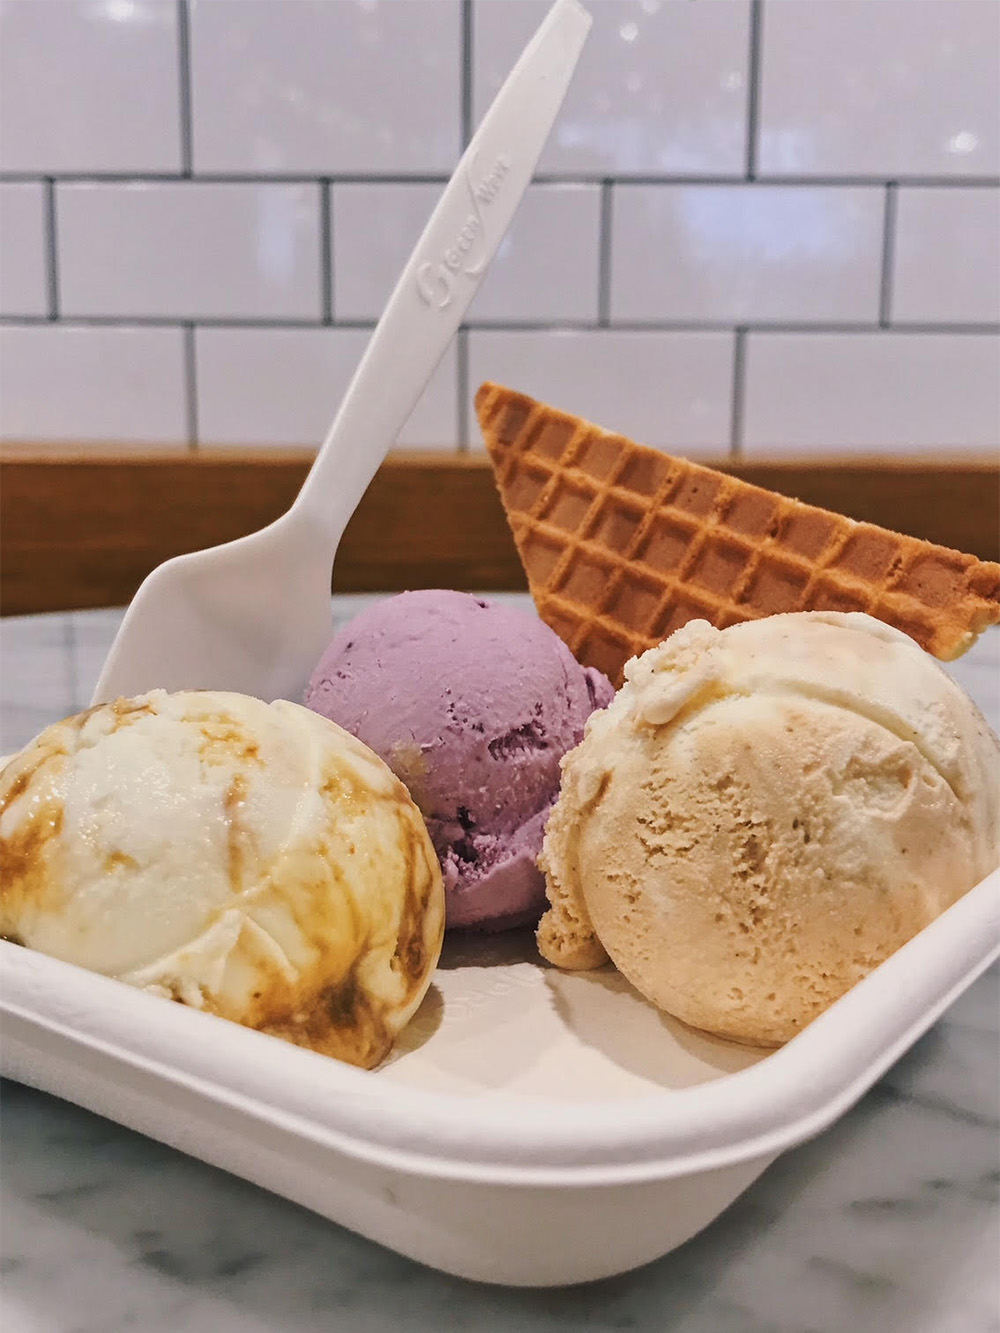 Creative Flavored Ice Creams at Jeni's Splendid Ice Cream